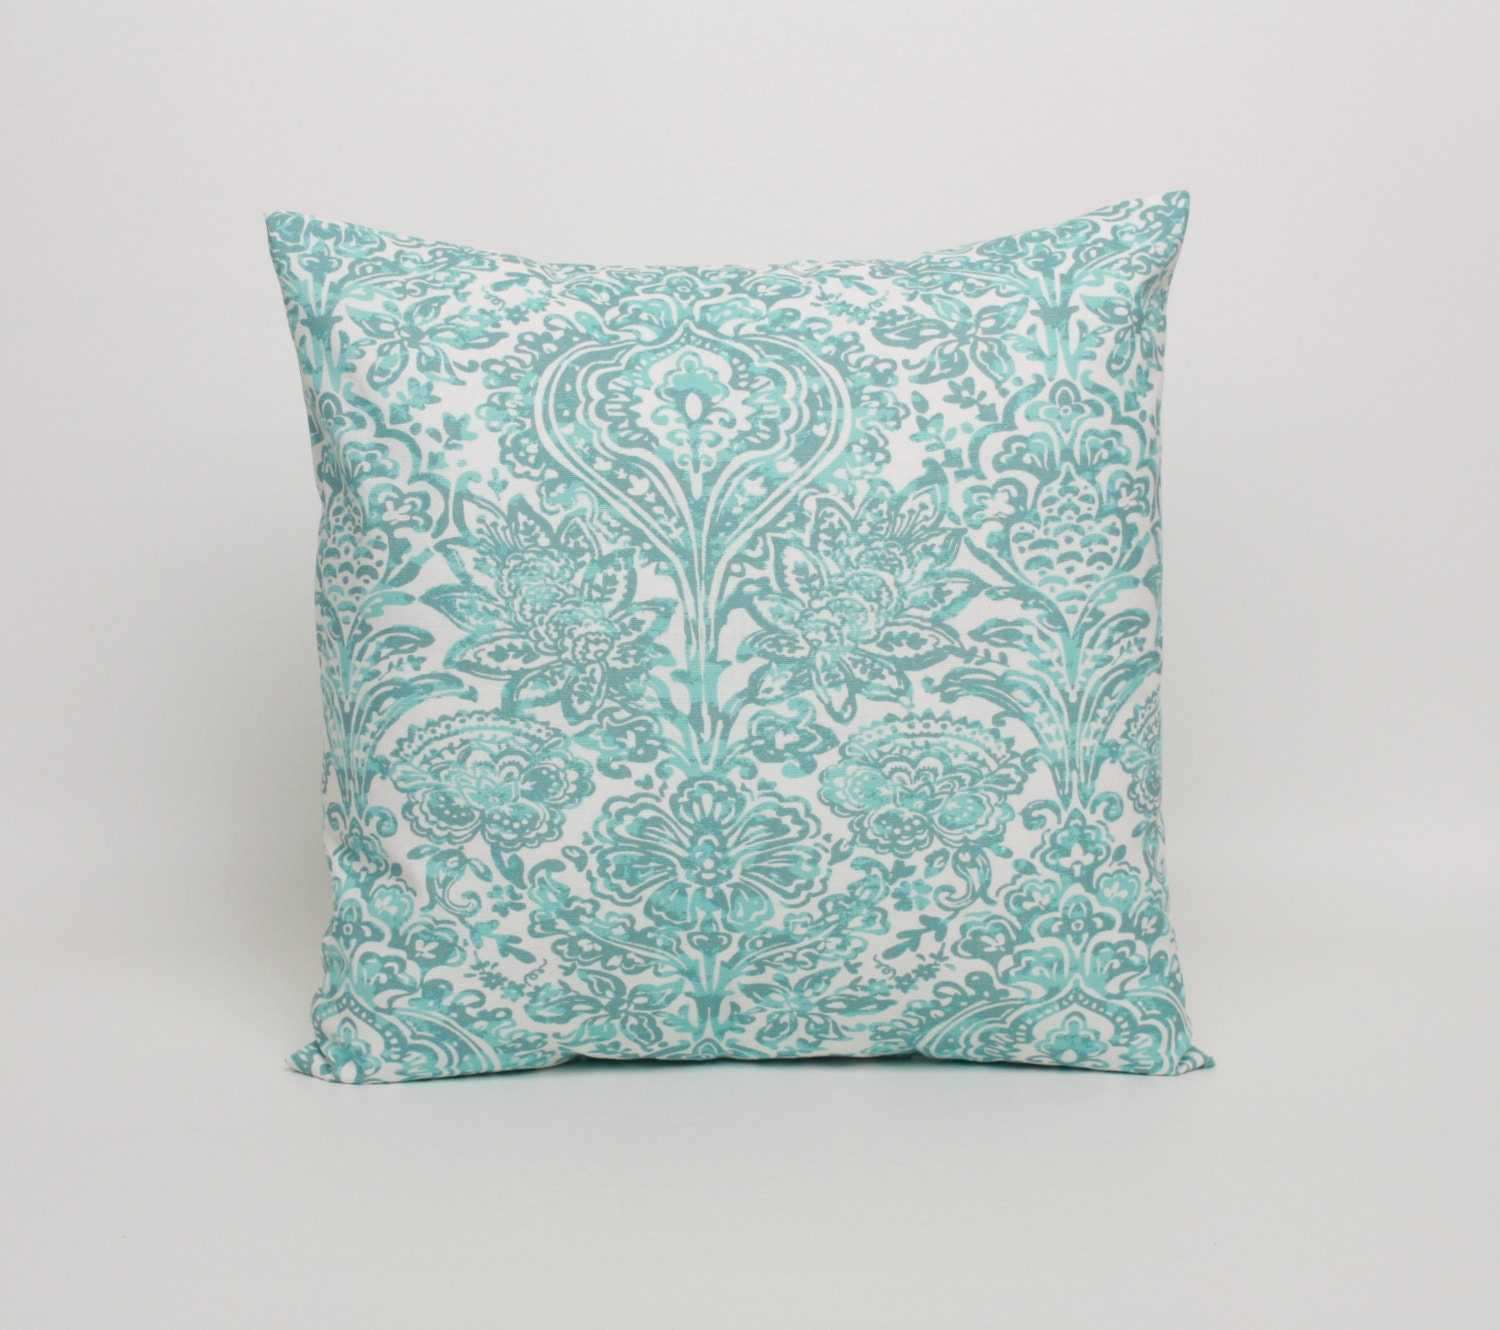 Blue Throw Pillow 20x20 Spa Blue Decorative Pillow Covers